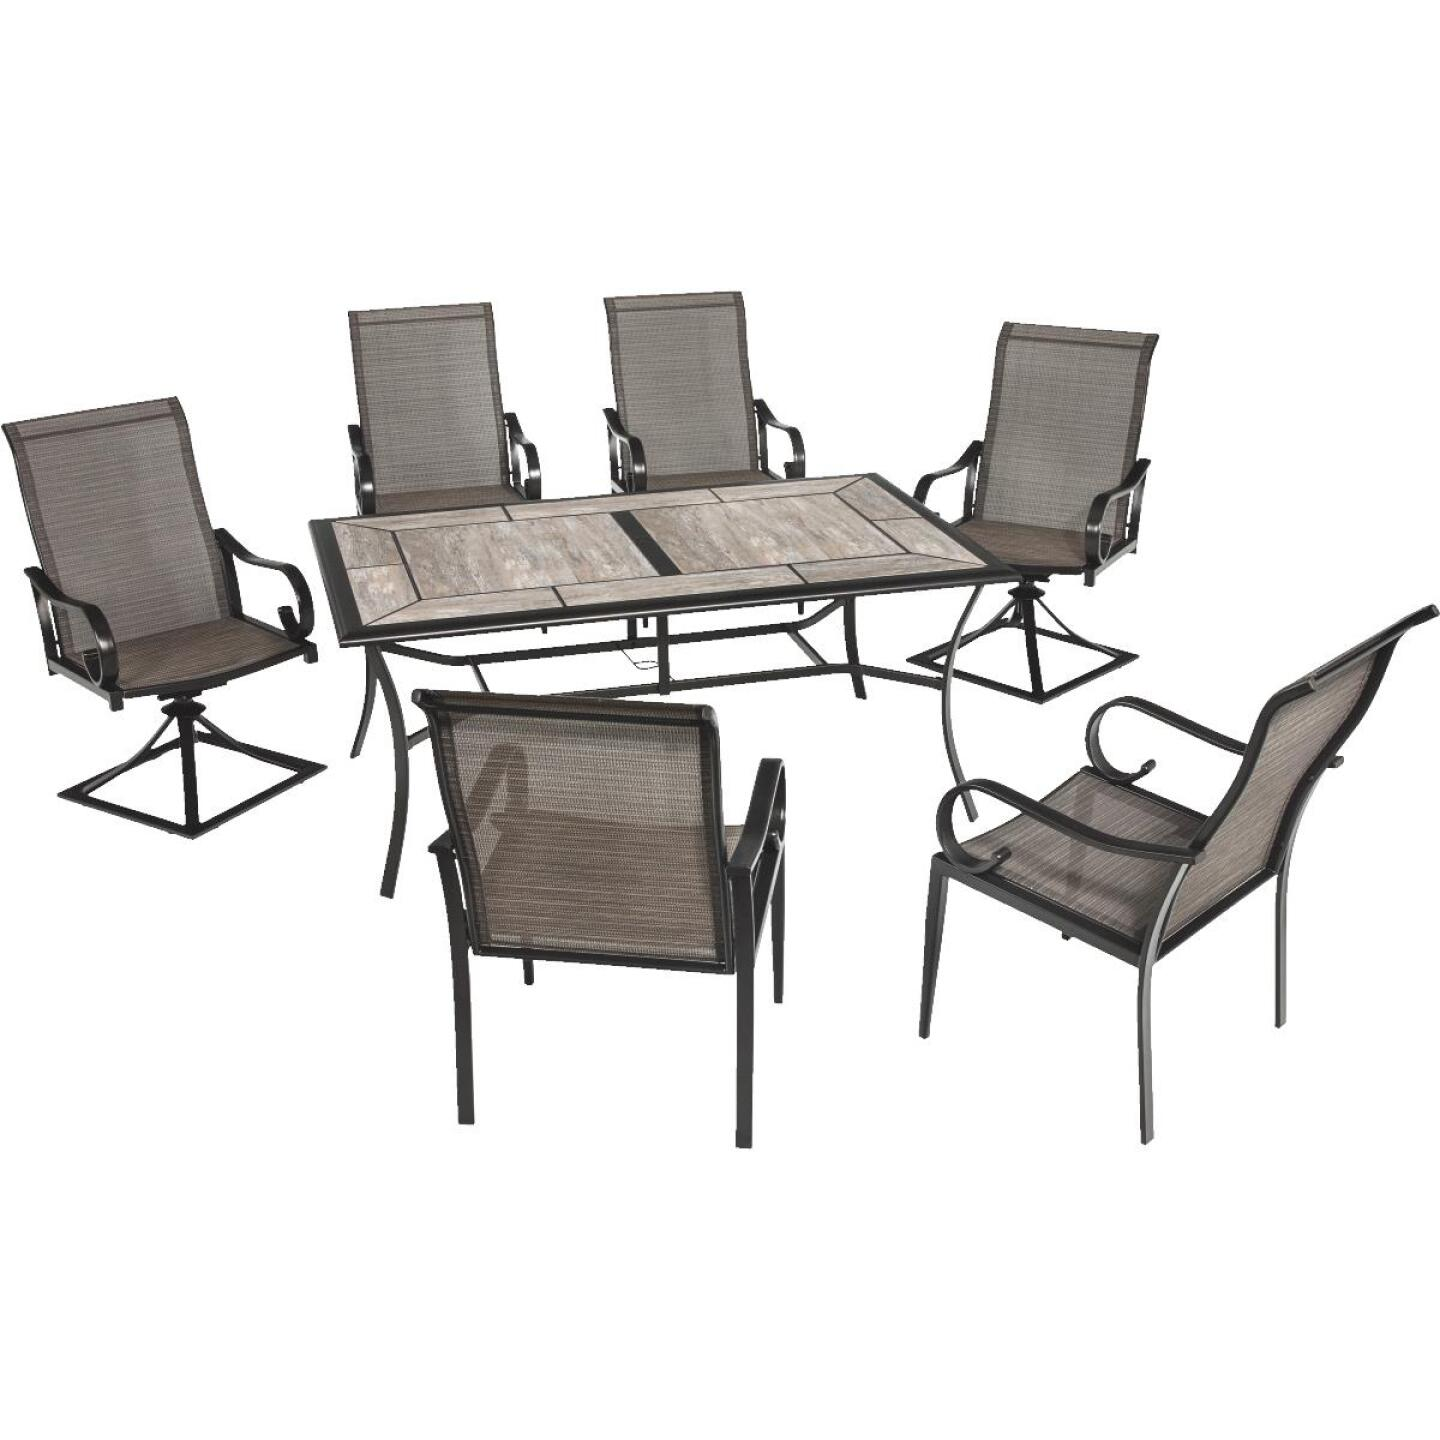 Outdoor Expressions Berkshire 7-Piece Dining Set Image 88